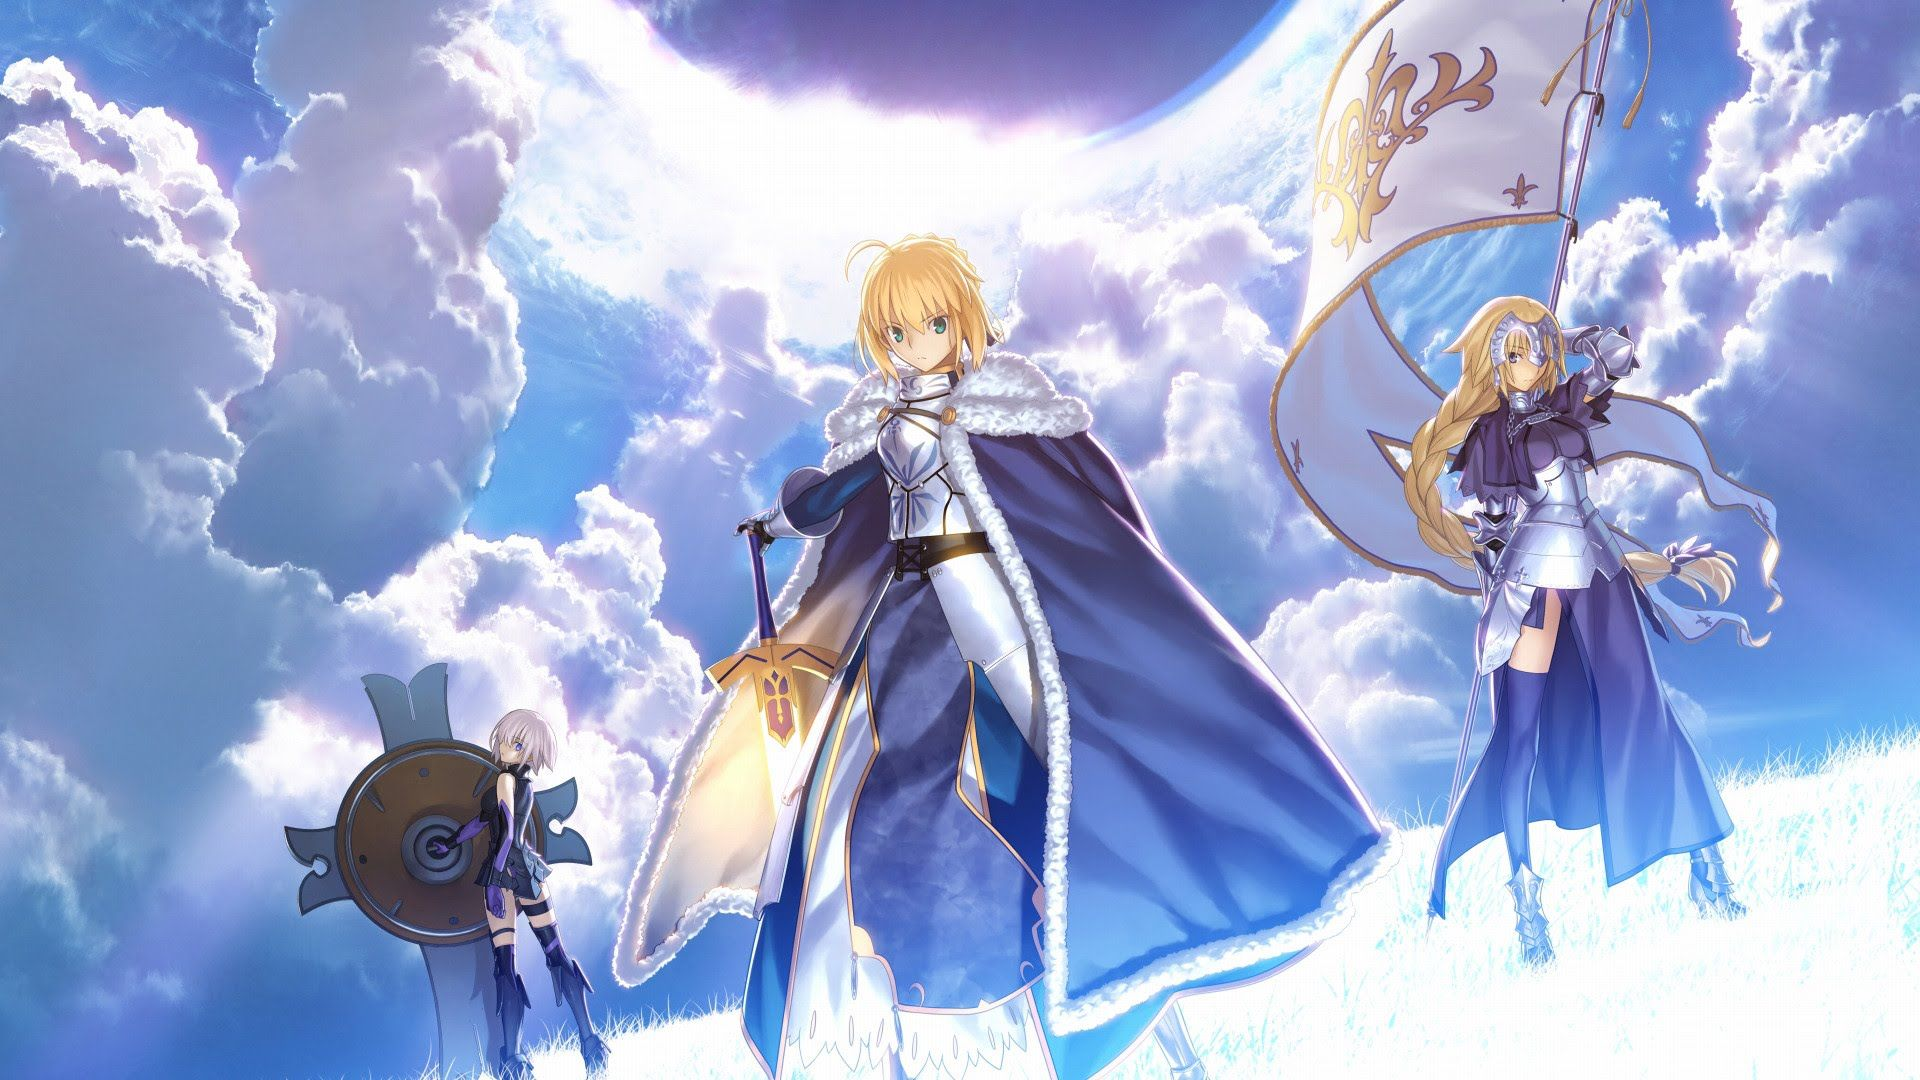 Fate Grand Order 1920x1080 Wallpapers Top Free Fate Grand Order 1920x1080 Backgrounds Wallpaperaccess